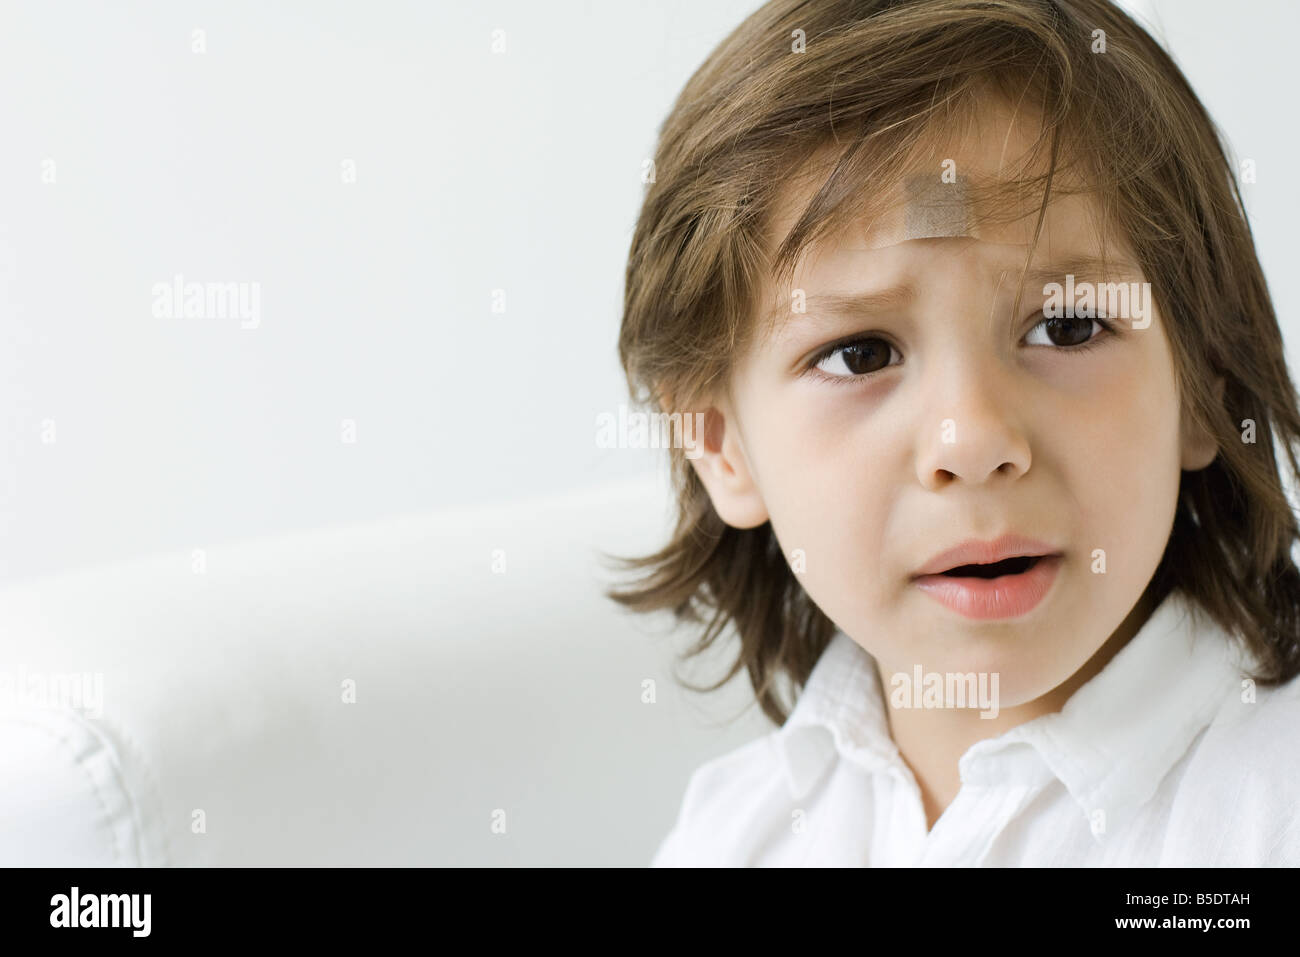 Little boy with adhesive bandage on his forehead, looking away and furrowing brow - Stock Image